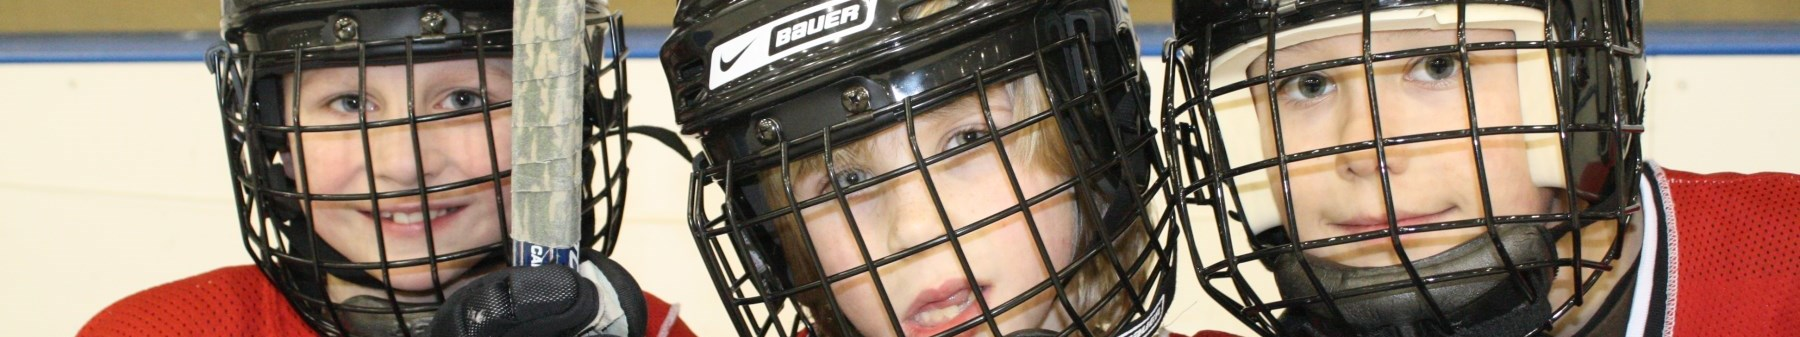 Minor Hockey Players - CWK Image